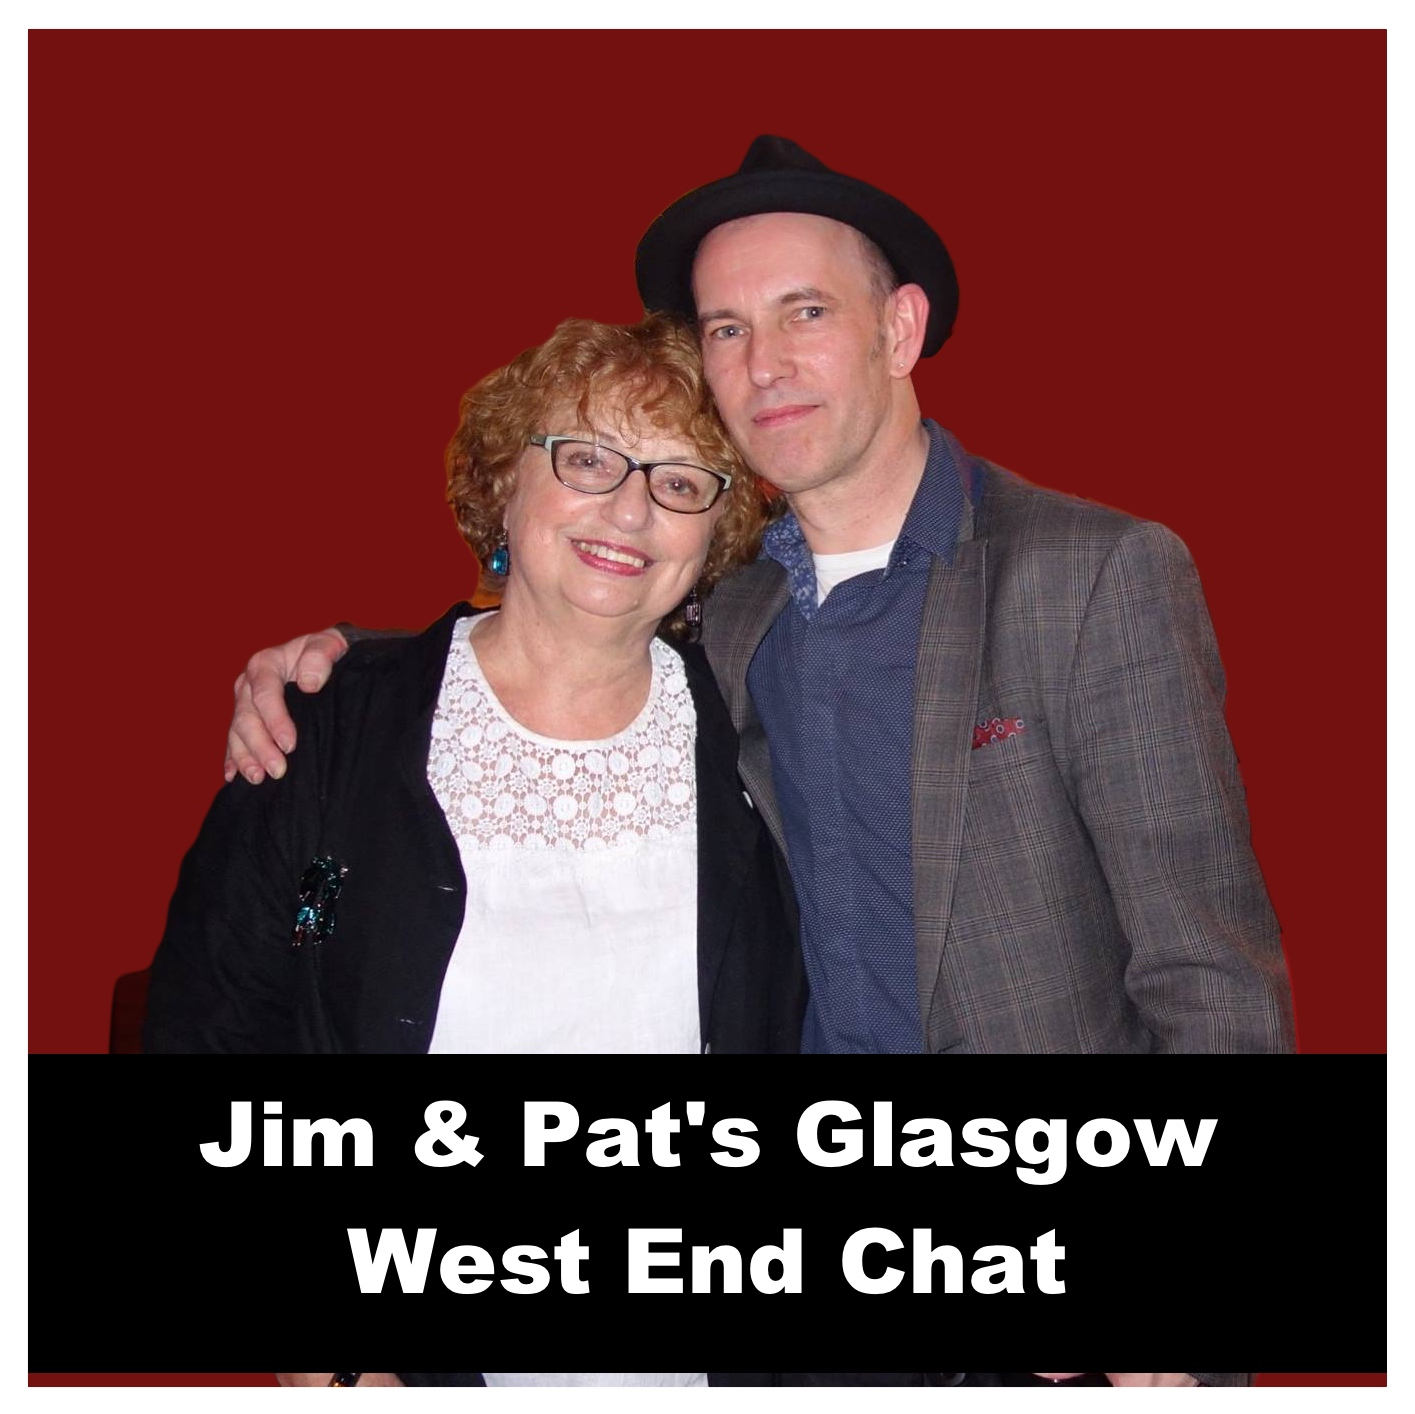 What's Pat been up to: West End Festival chat, GSA Fashion & Textiles, Open Gardens, Janet Paisley event and more